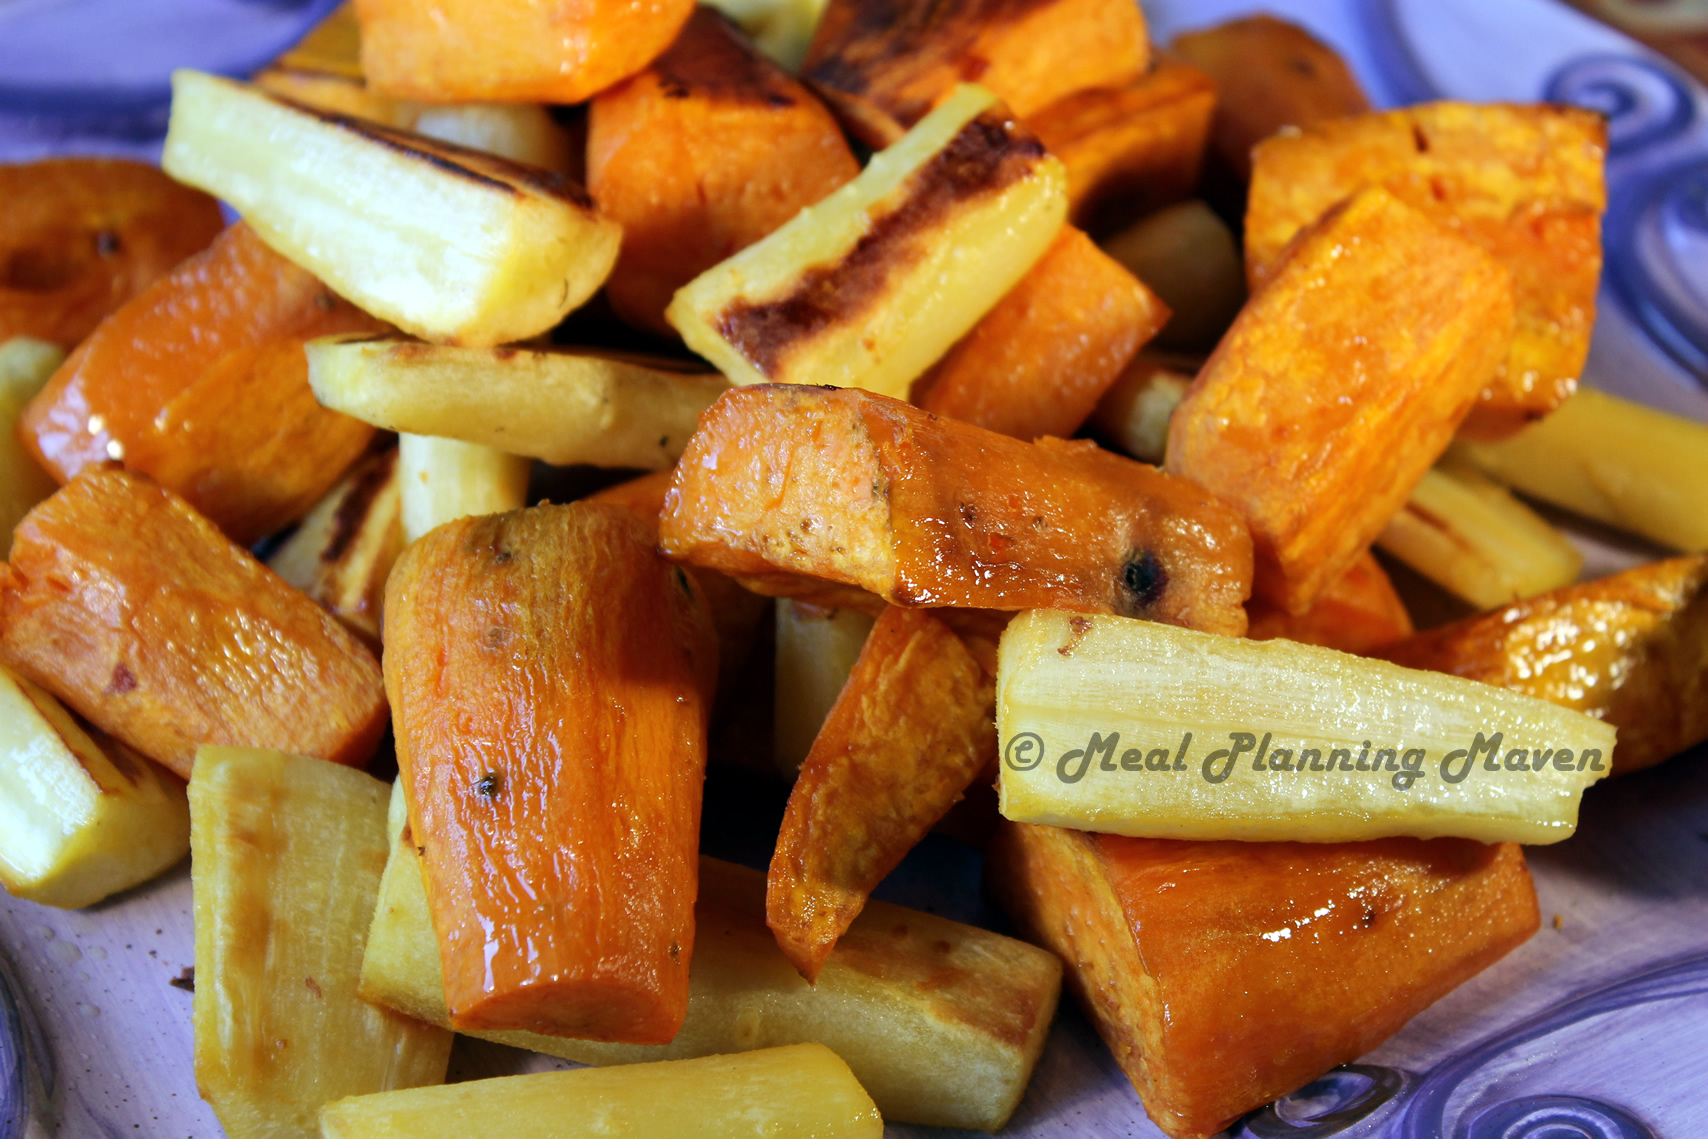 Roasted Sweets 'n Parsnips